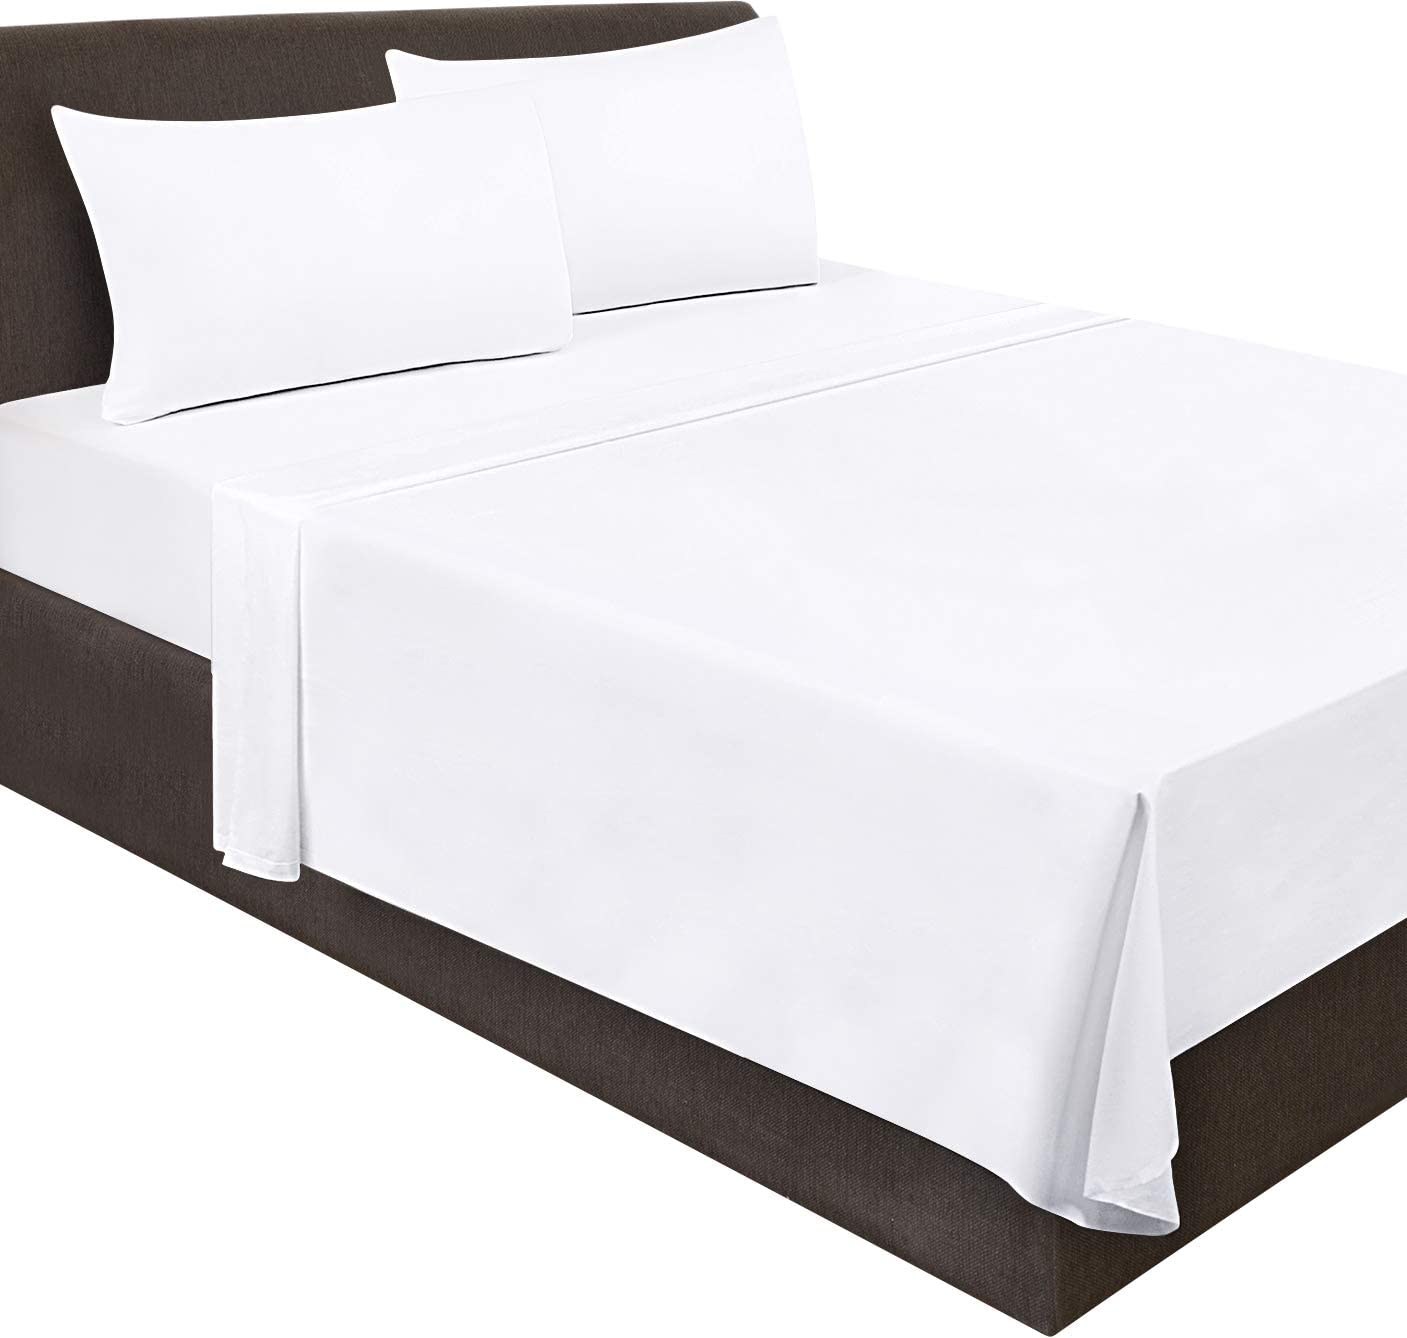 Utopia Bedding Flat Sheet- Soft Brushed Microfiber Fabric - Shrinkage & Fade Resistant Top Sheet - Easy Care - 1 Flat Sheet Only (Queen, White): Home & Kitchen